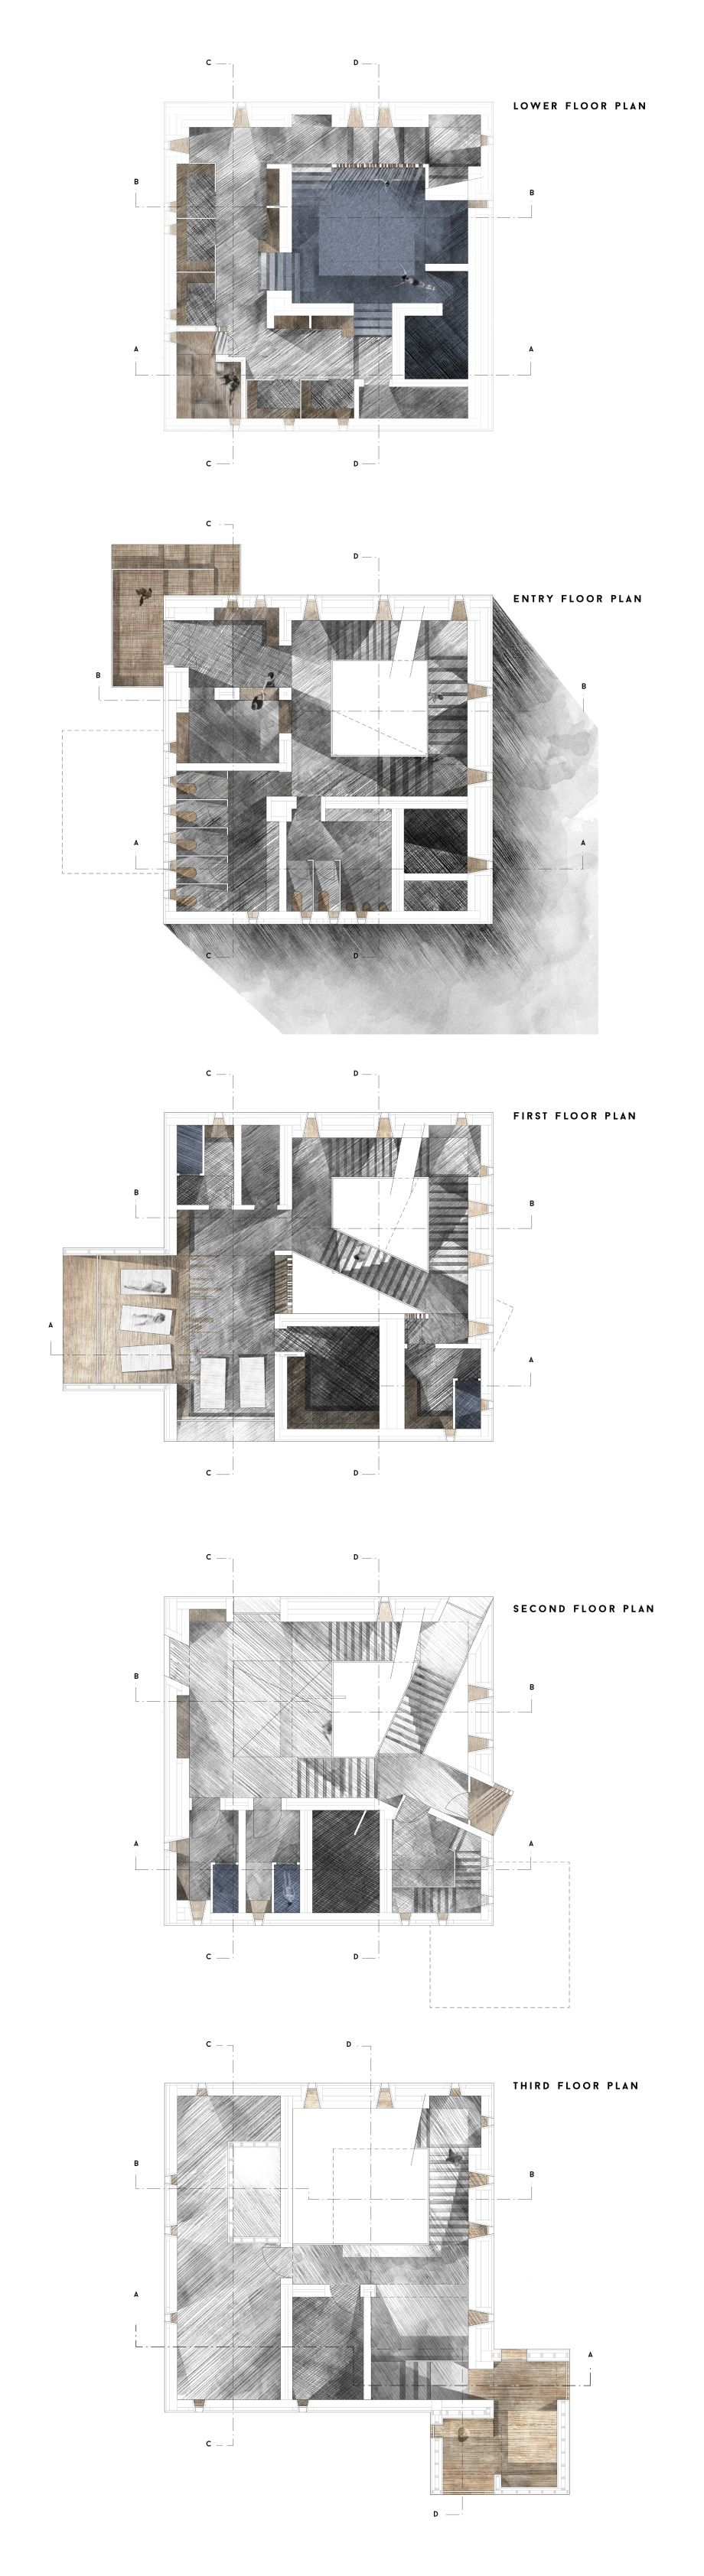 floor plans Alex Kindlen Final Studio